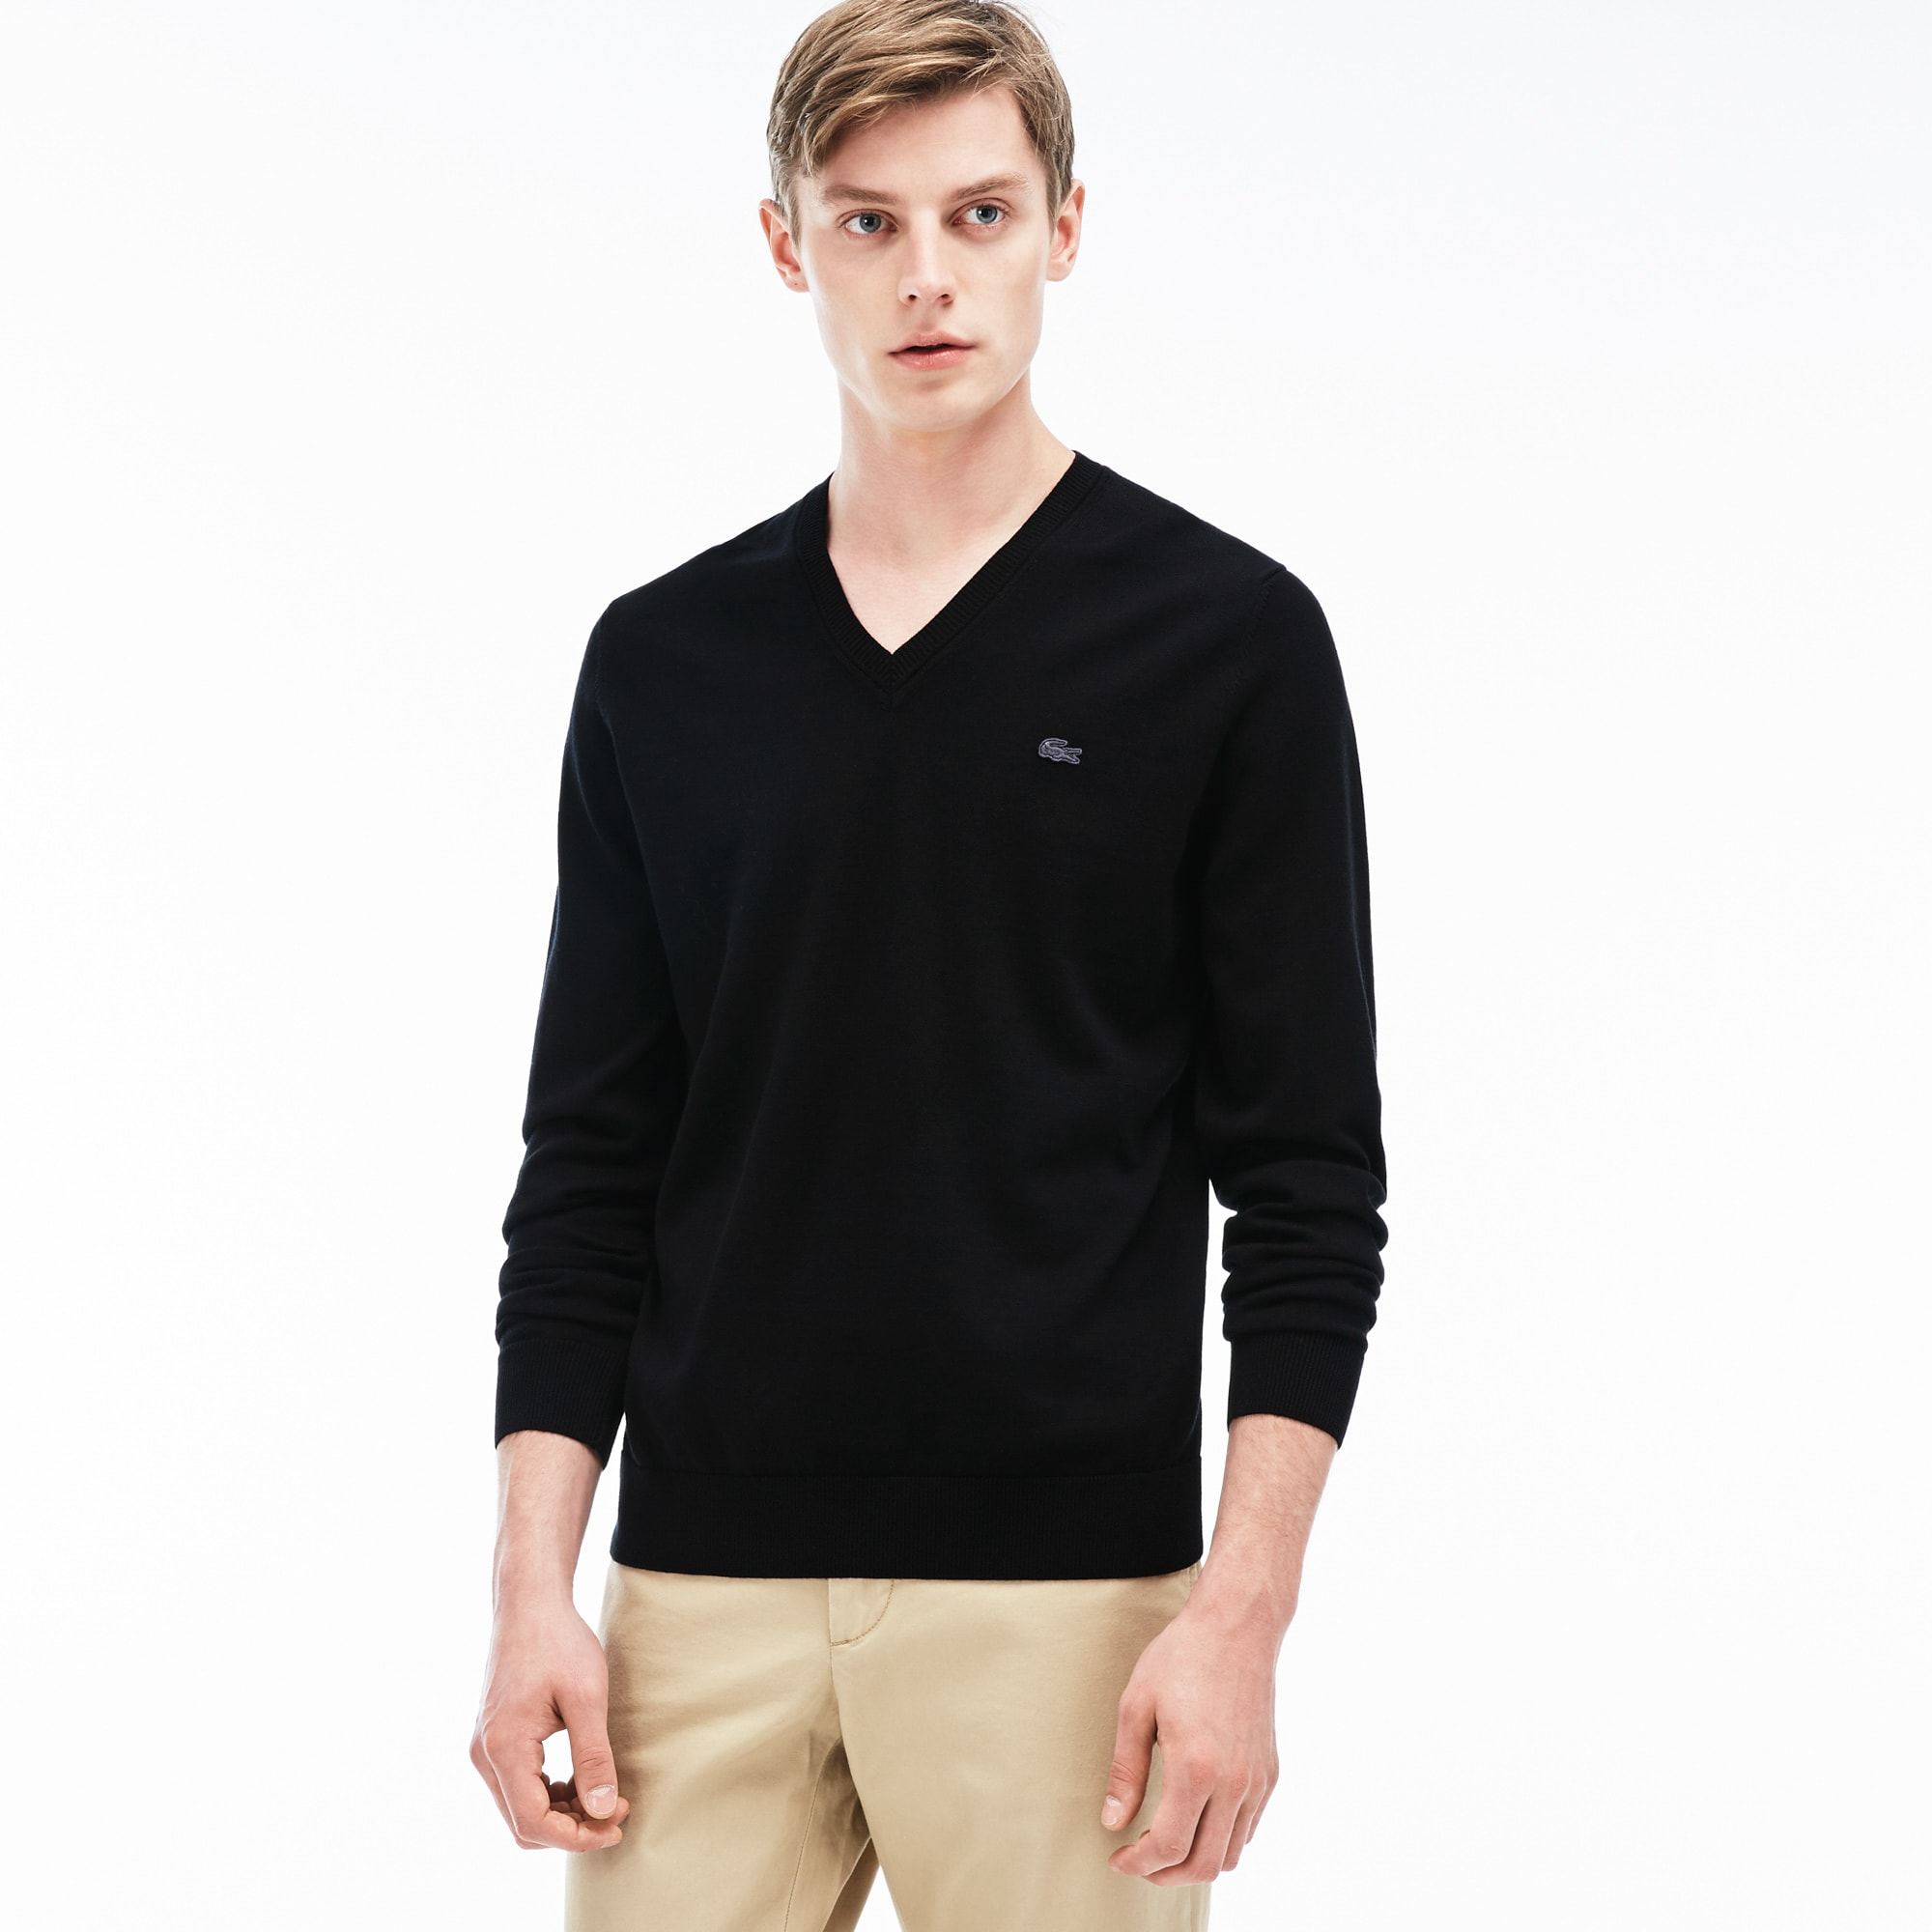 Men's Ribbed V-Neck Sweater